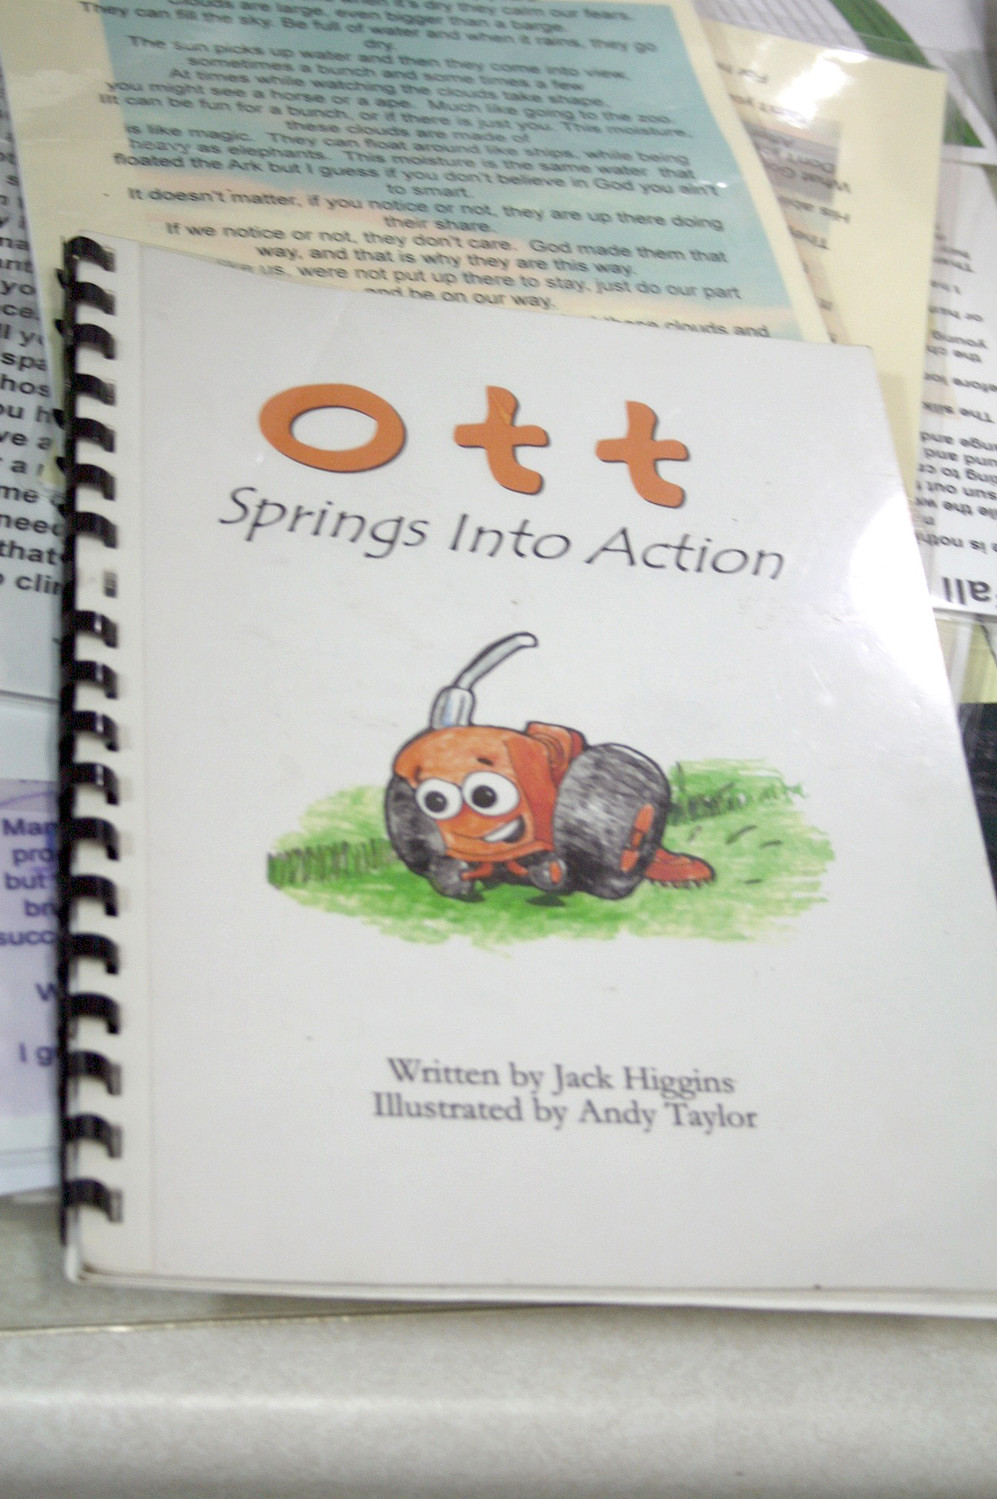 "'OTT SPRINGS into Action"" is one of the books written by Jack Higgins."